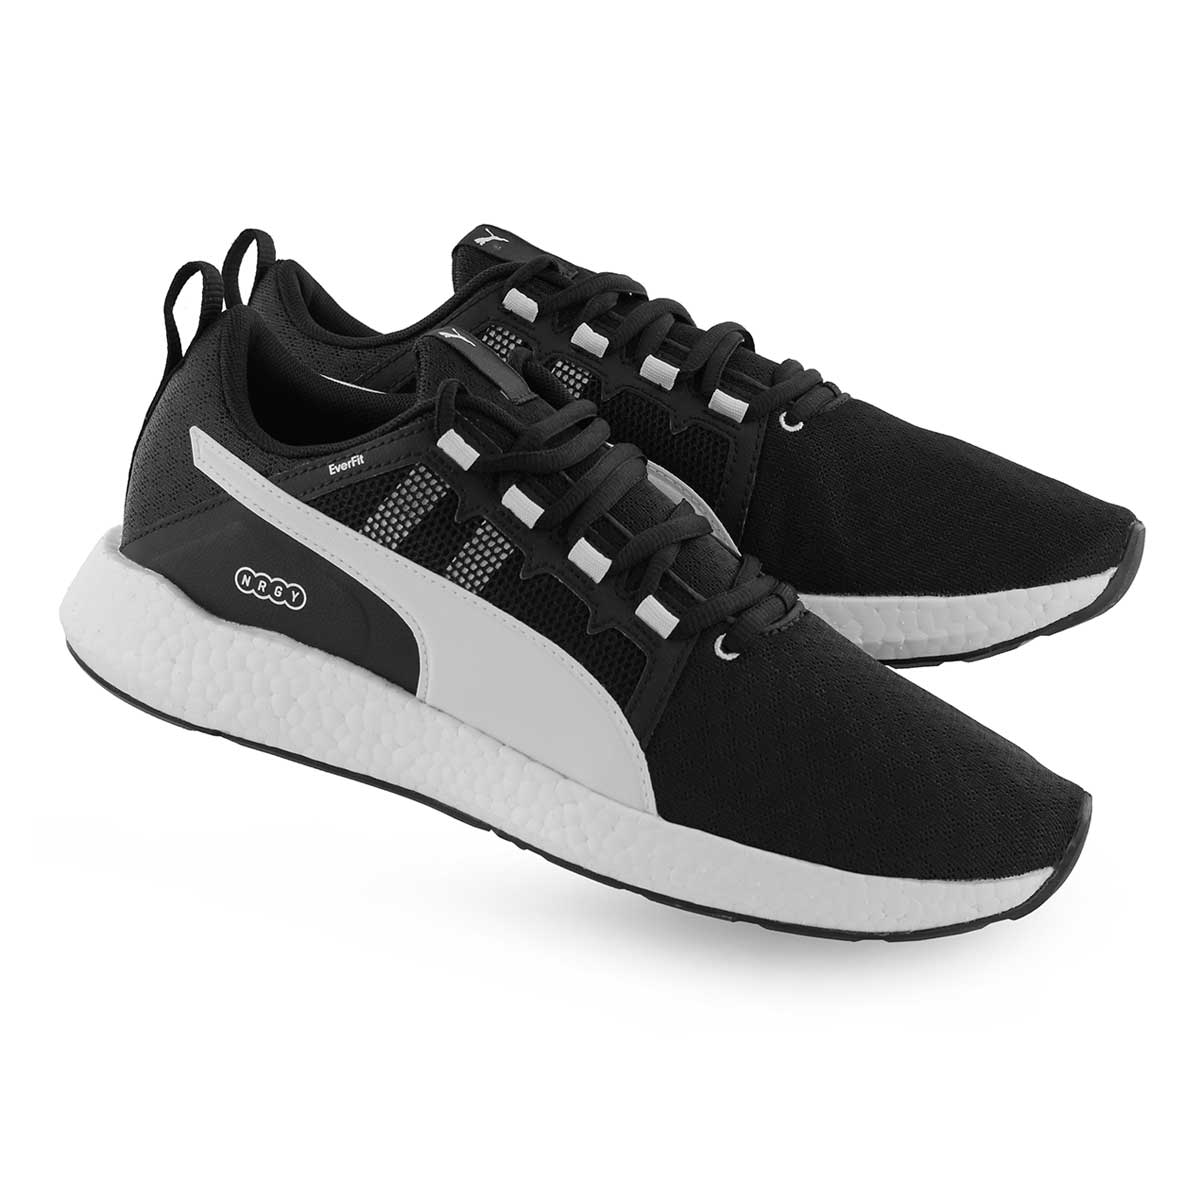 Mns NRGY Neko Turbo blk/wht lace up snkr